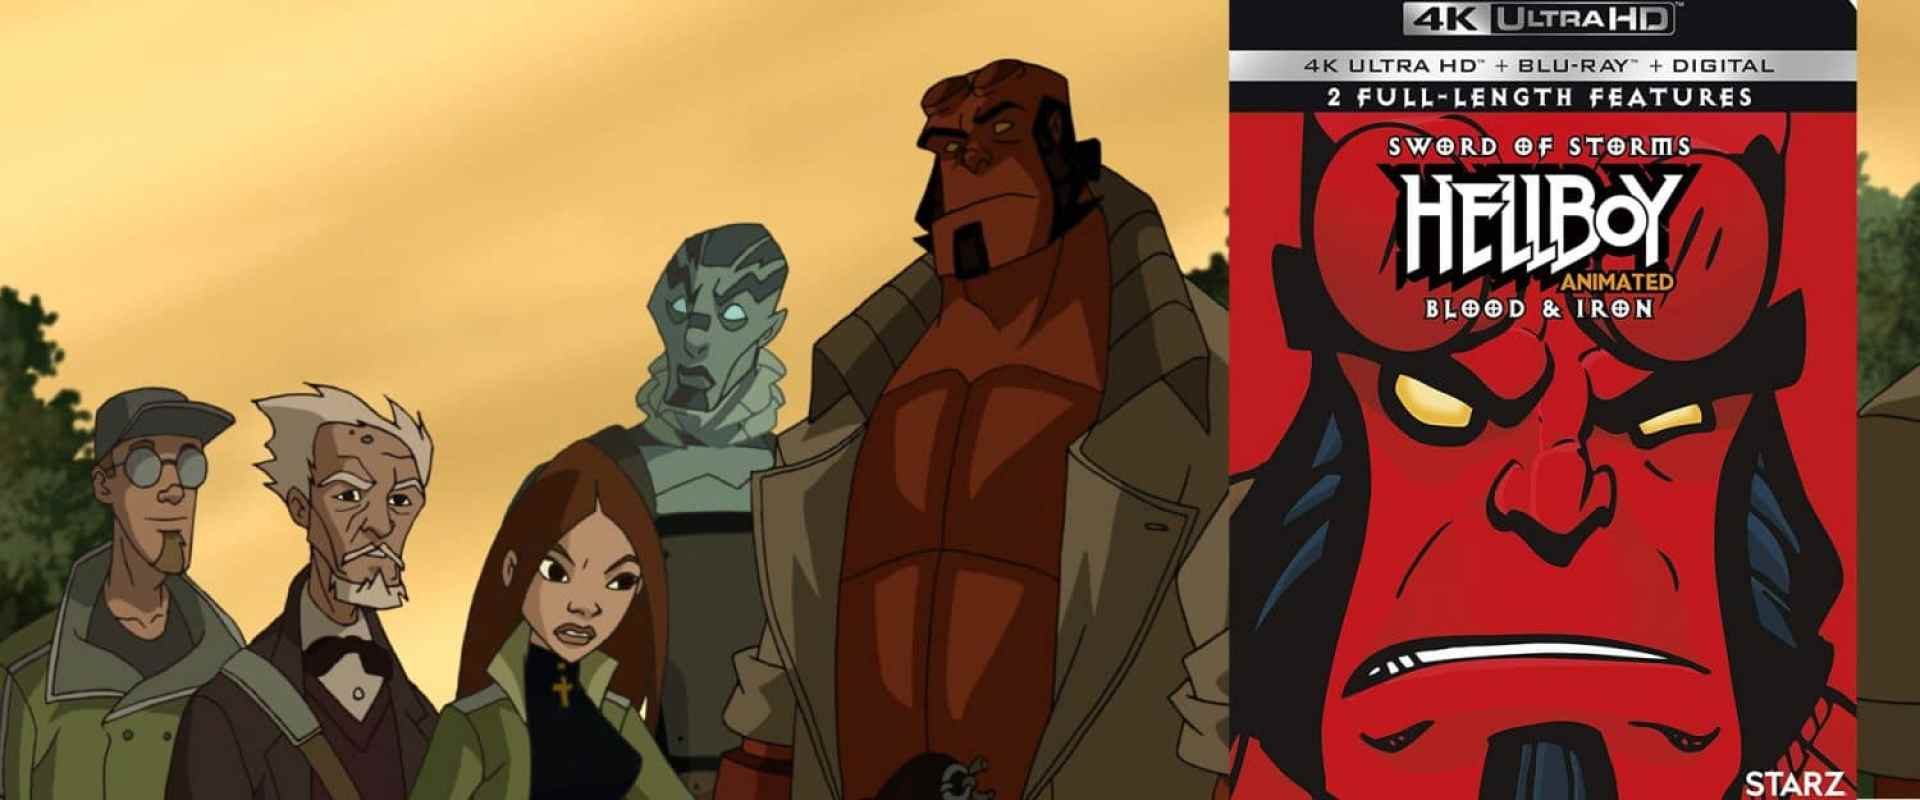 Two animated Hellboy movies come to 4K Ultra HD this week.